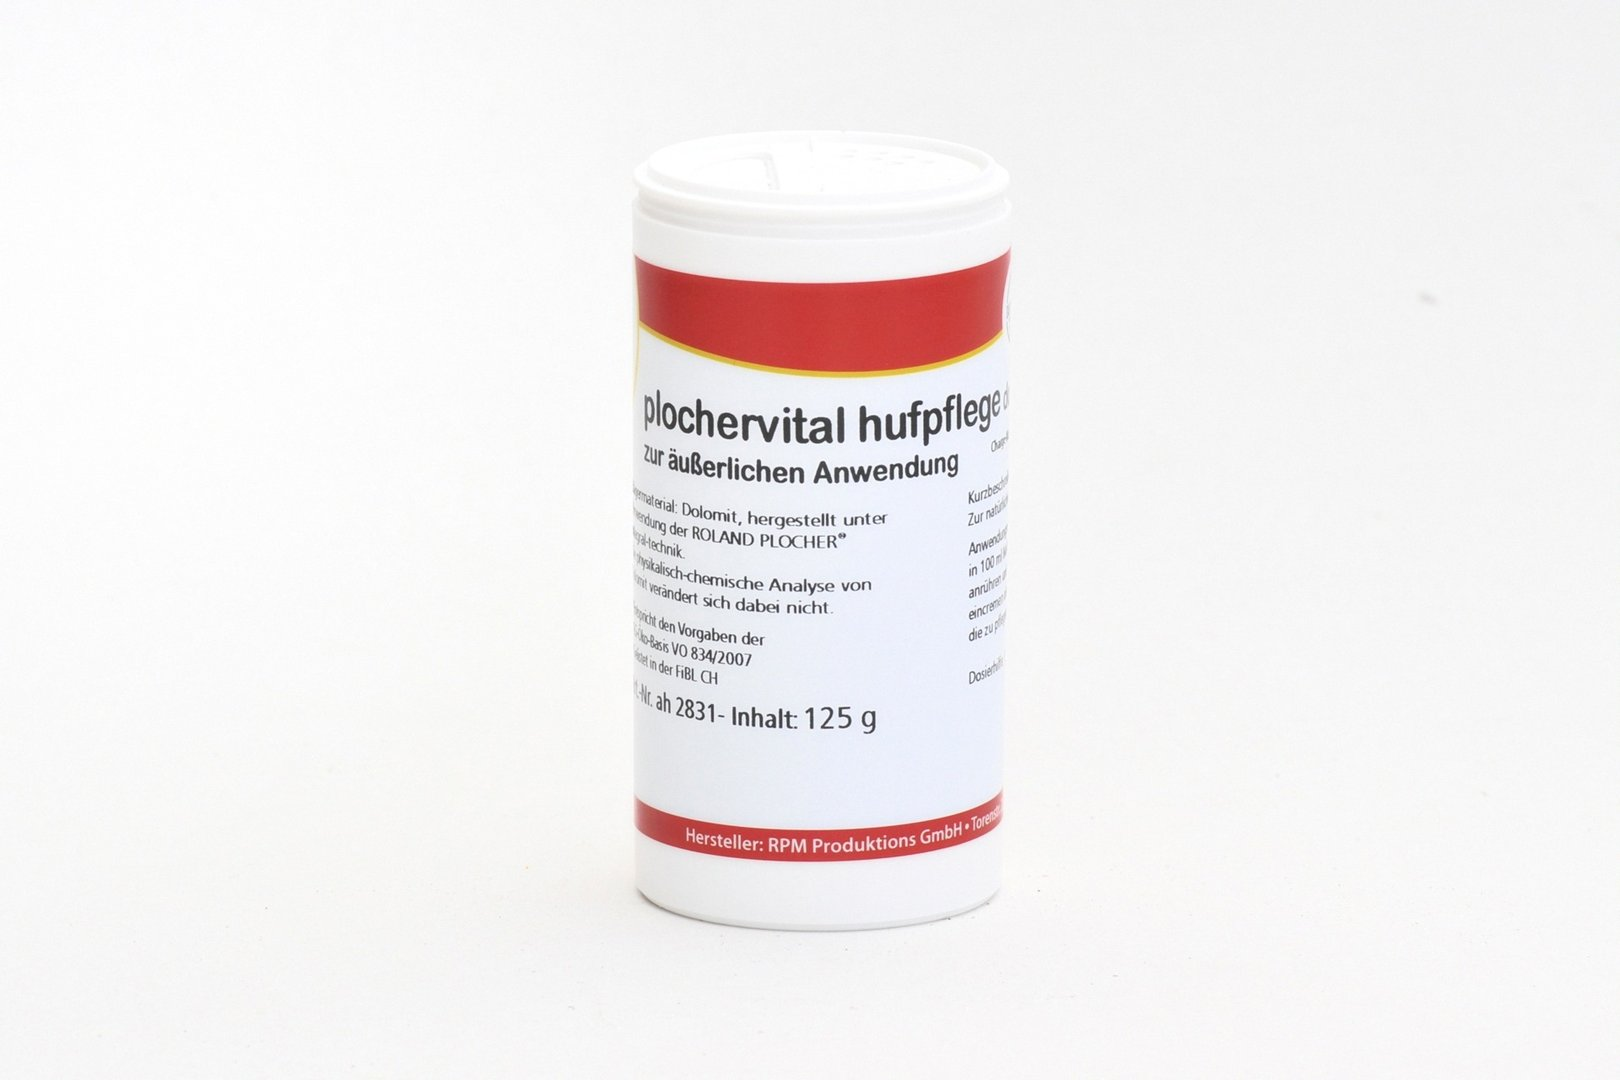 plochervital hufpflege do 125 g